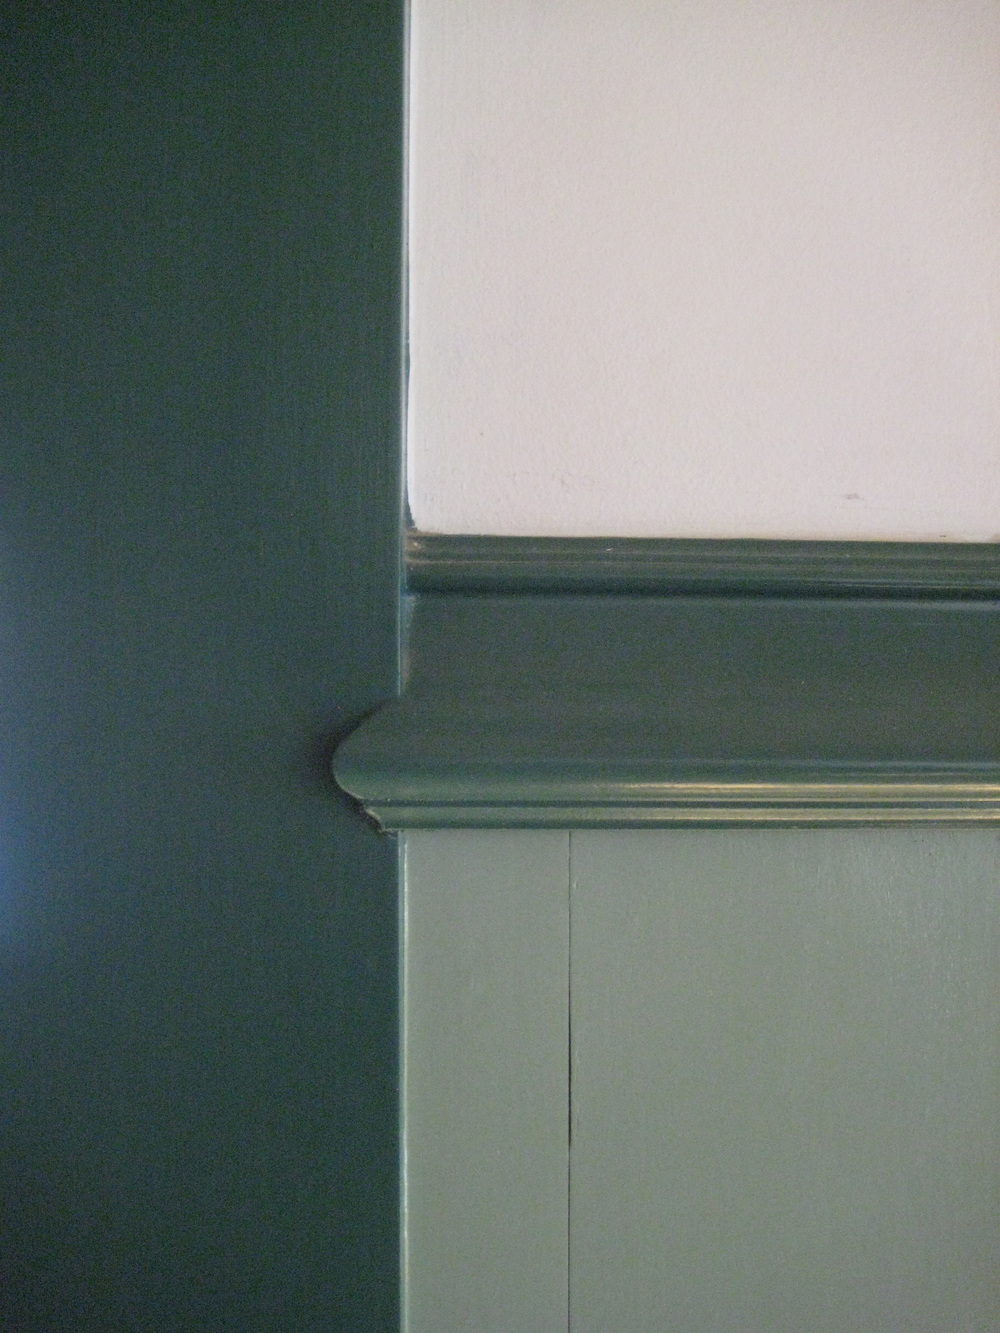 green wainscot detail.jpg